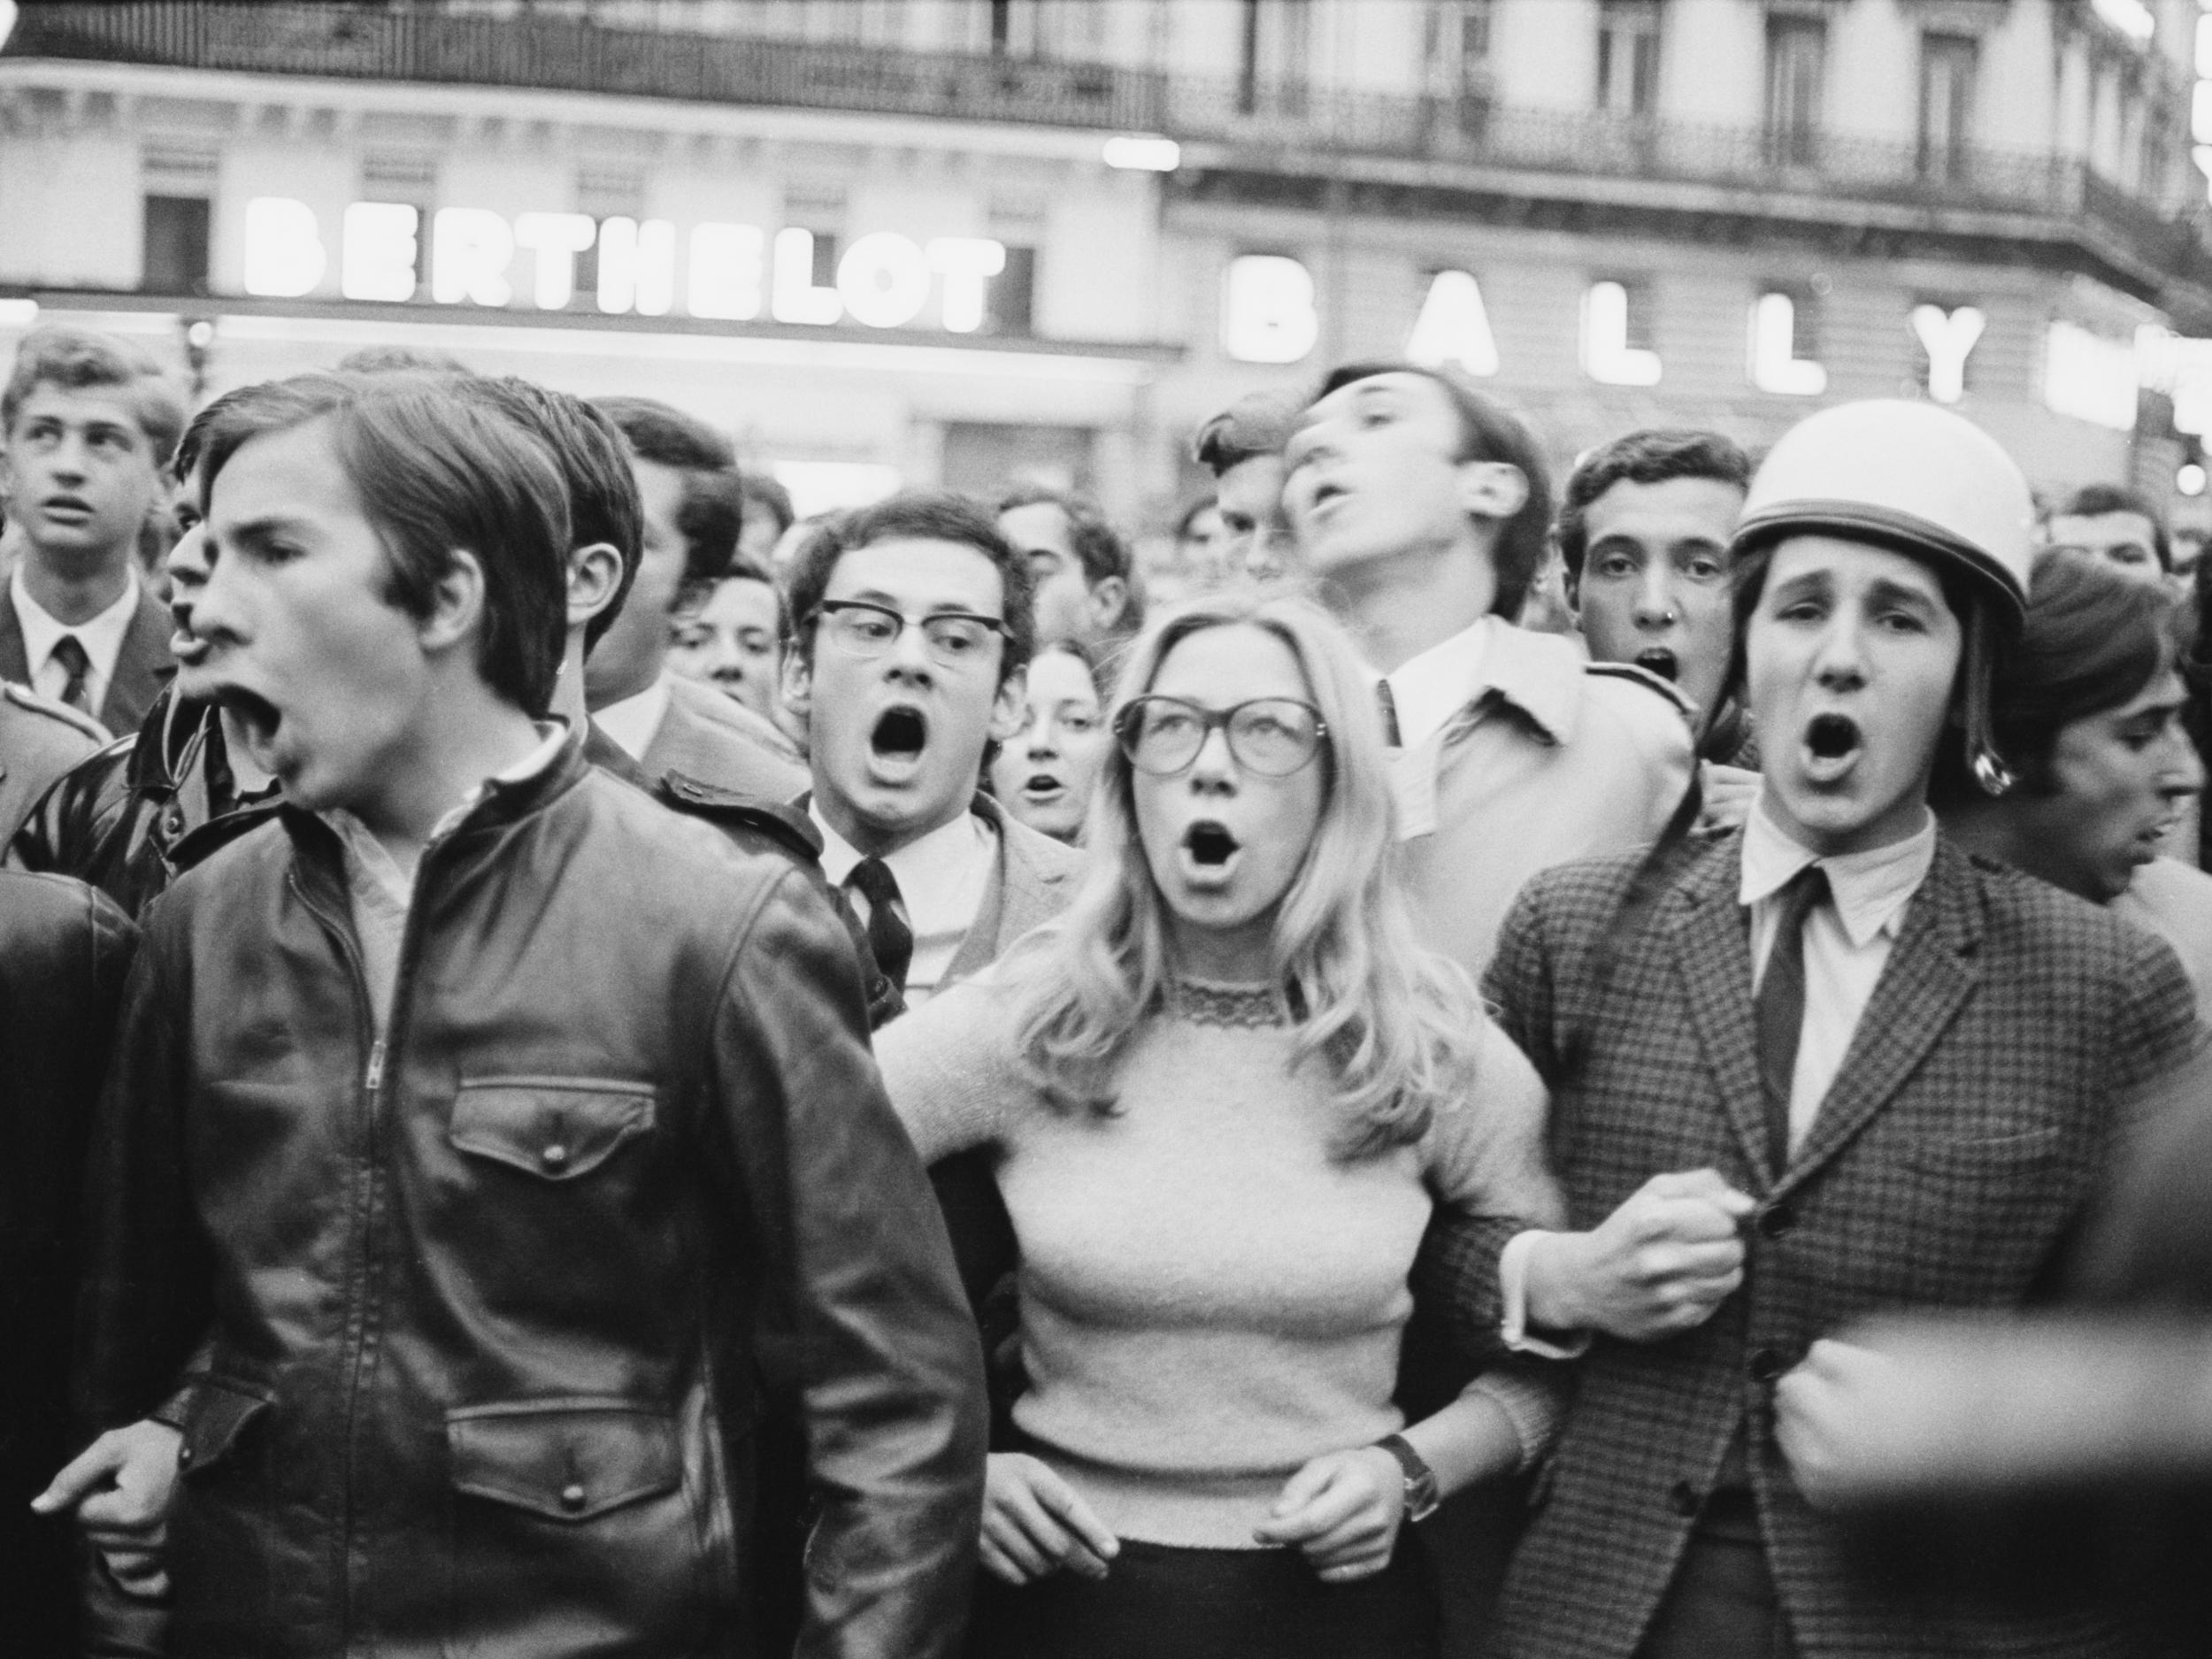 the paris riots of may 1968 how the frustrations of youth brought